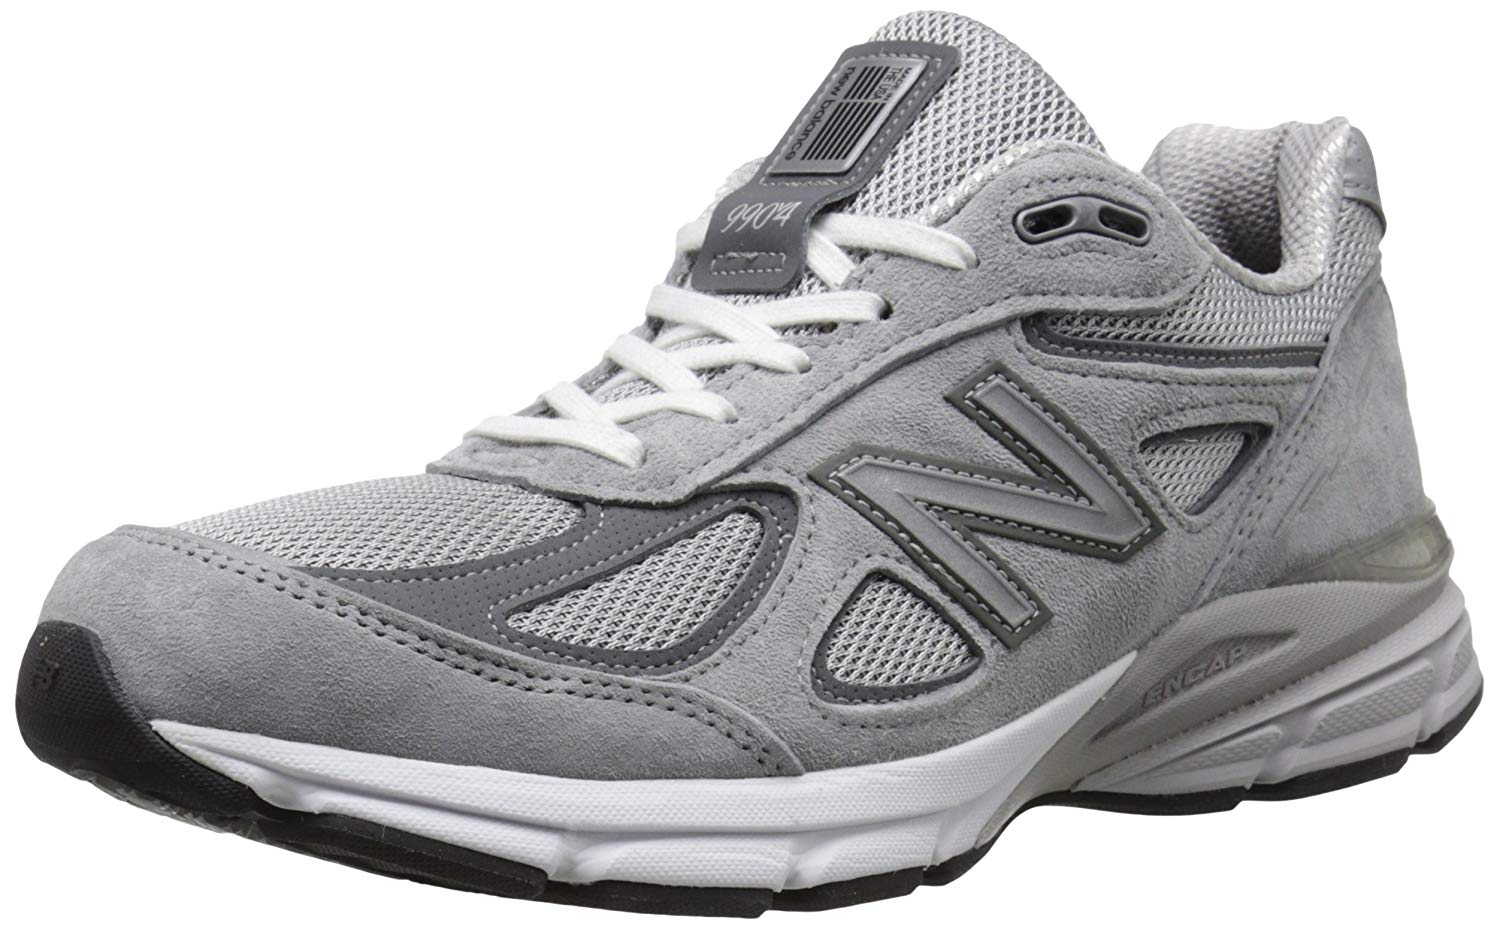 best website b28f9 96f53 New Balance 990V4 Reviewed